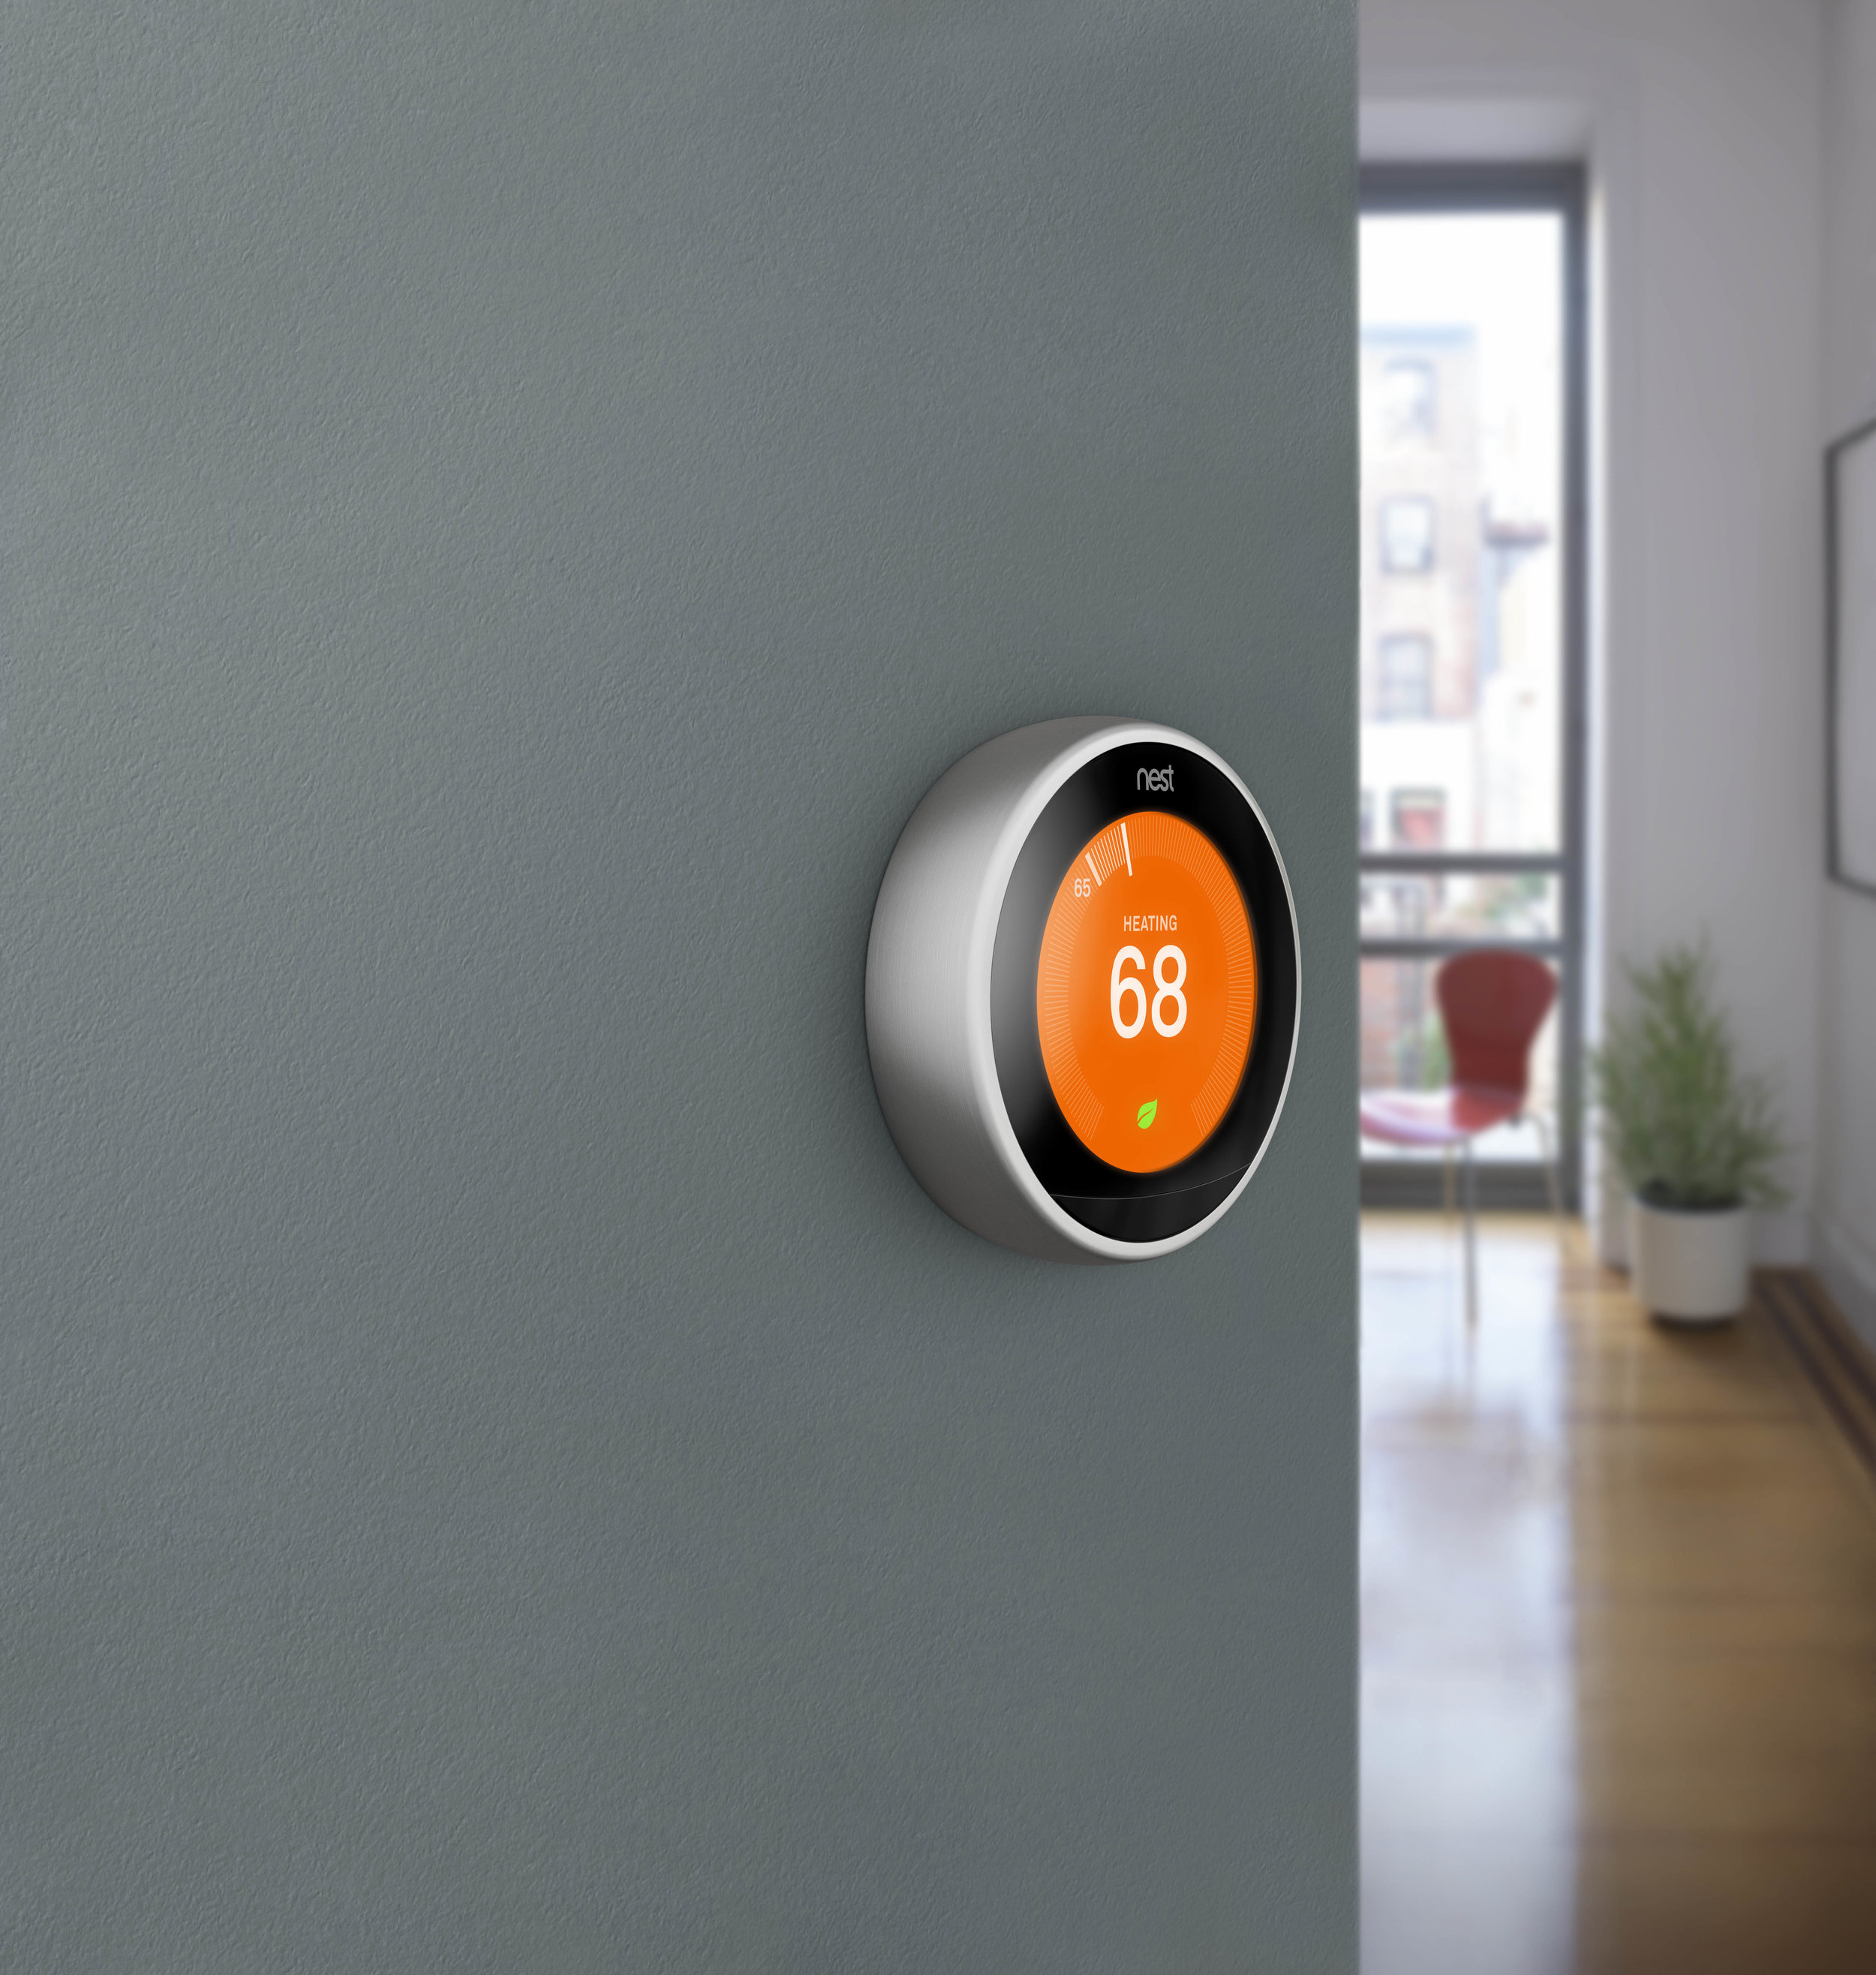 Nest Smart Thermostat - Nest has become an industry leader for their simple easy to use learning thermostat. Its modern looking and app controllable.